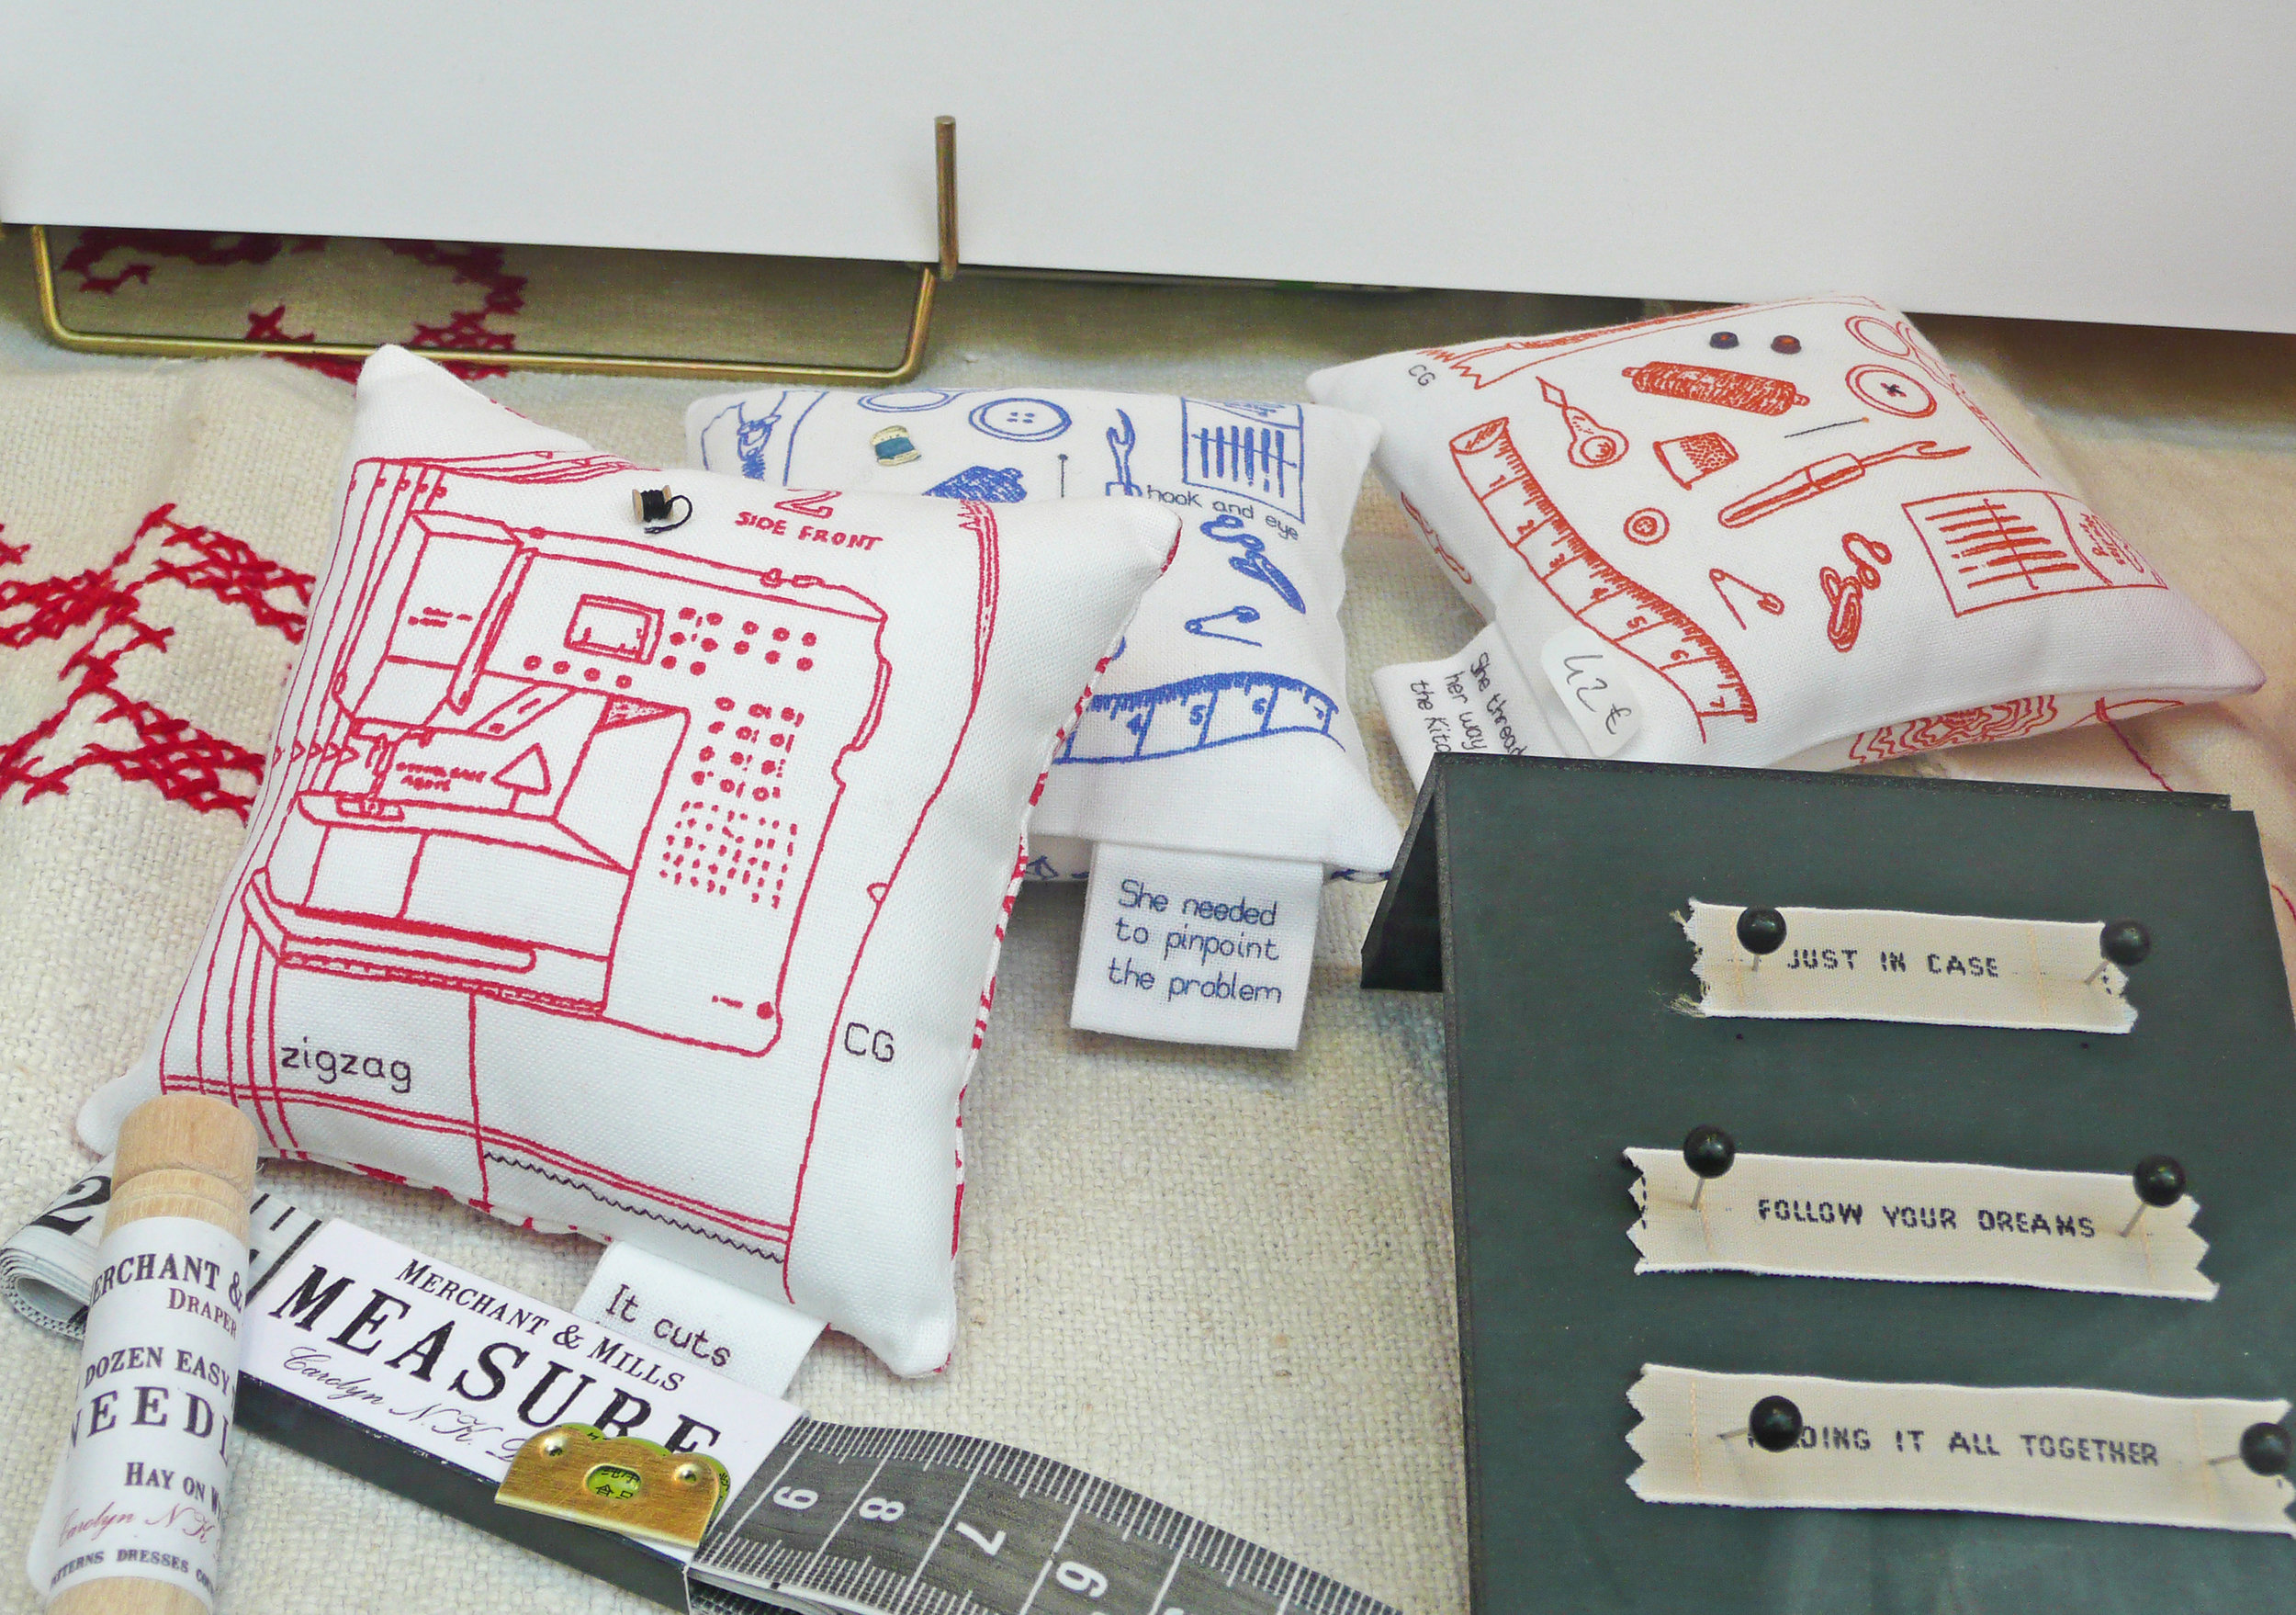 Pin cushions in window of Home Autour du Monde, Paris (sold out)